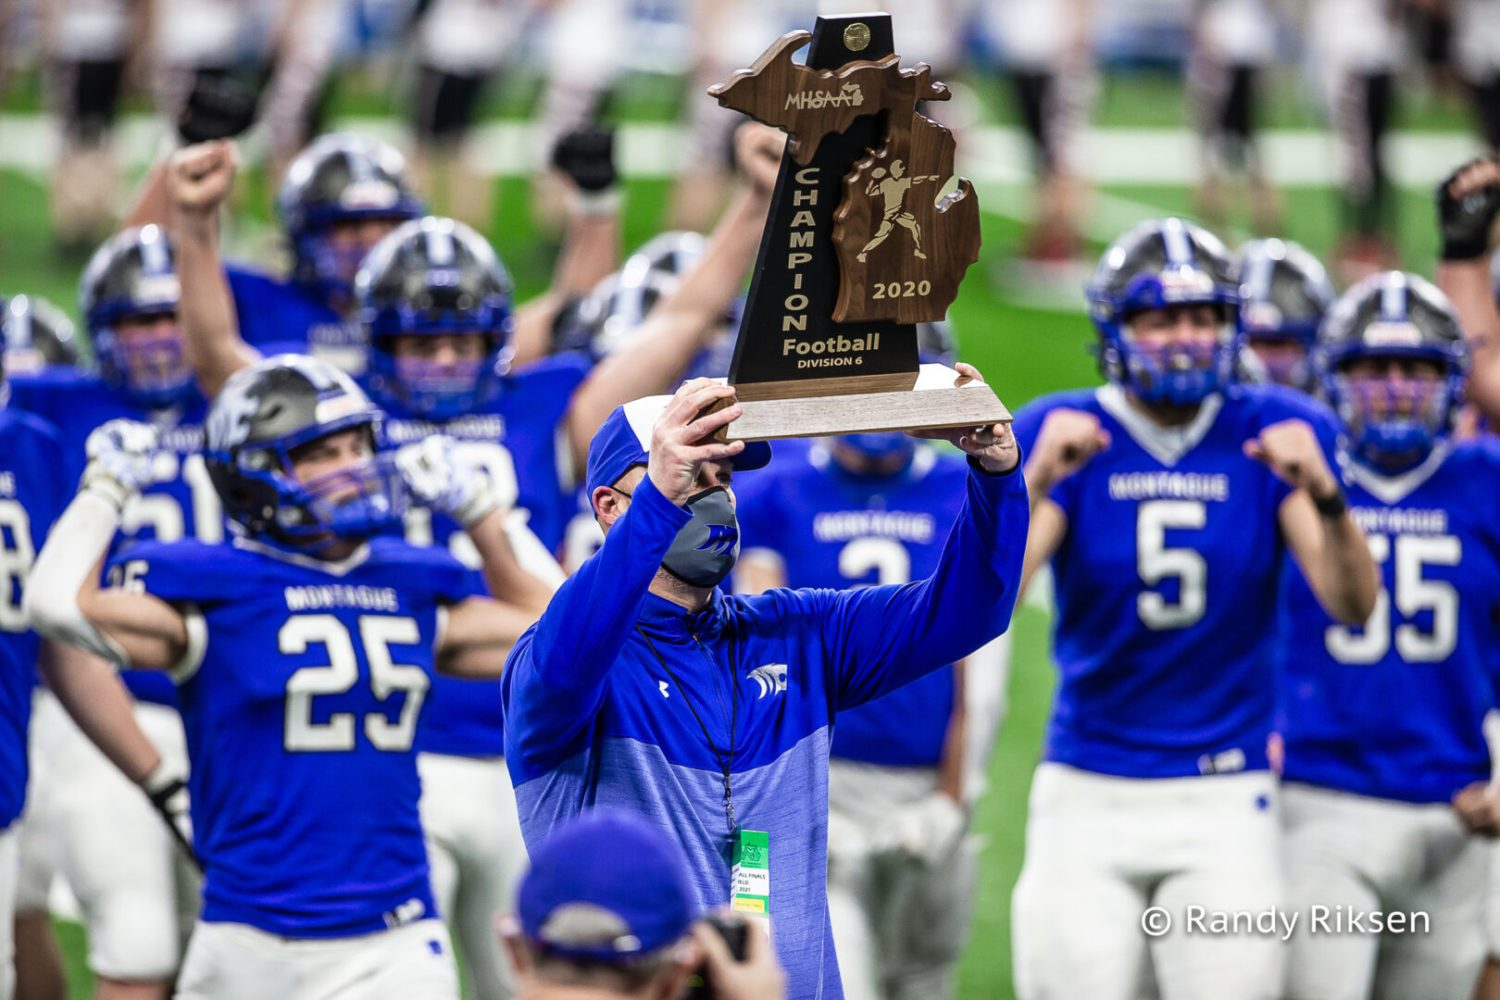 [VIDEO] One week ago, Montague gave its best response to most challenging season on record: A state football title